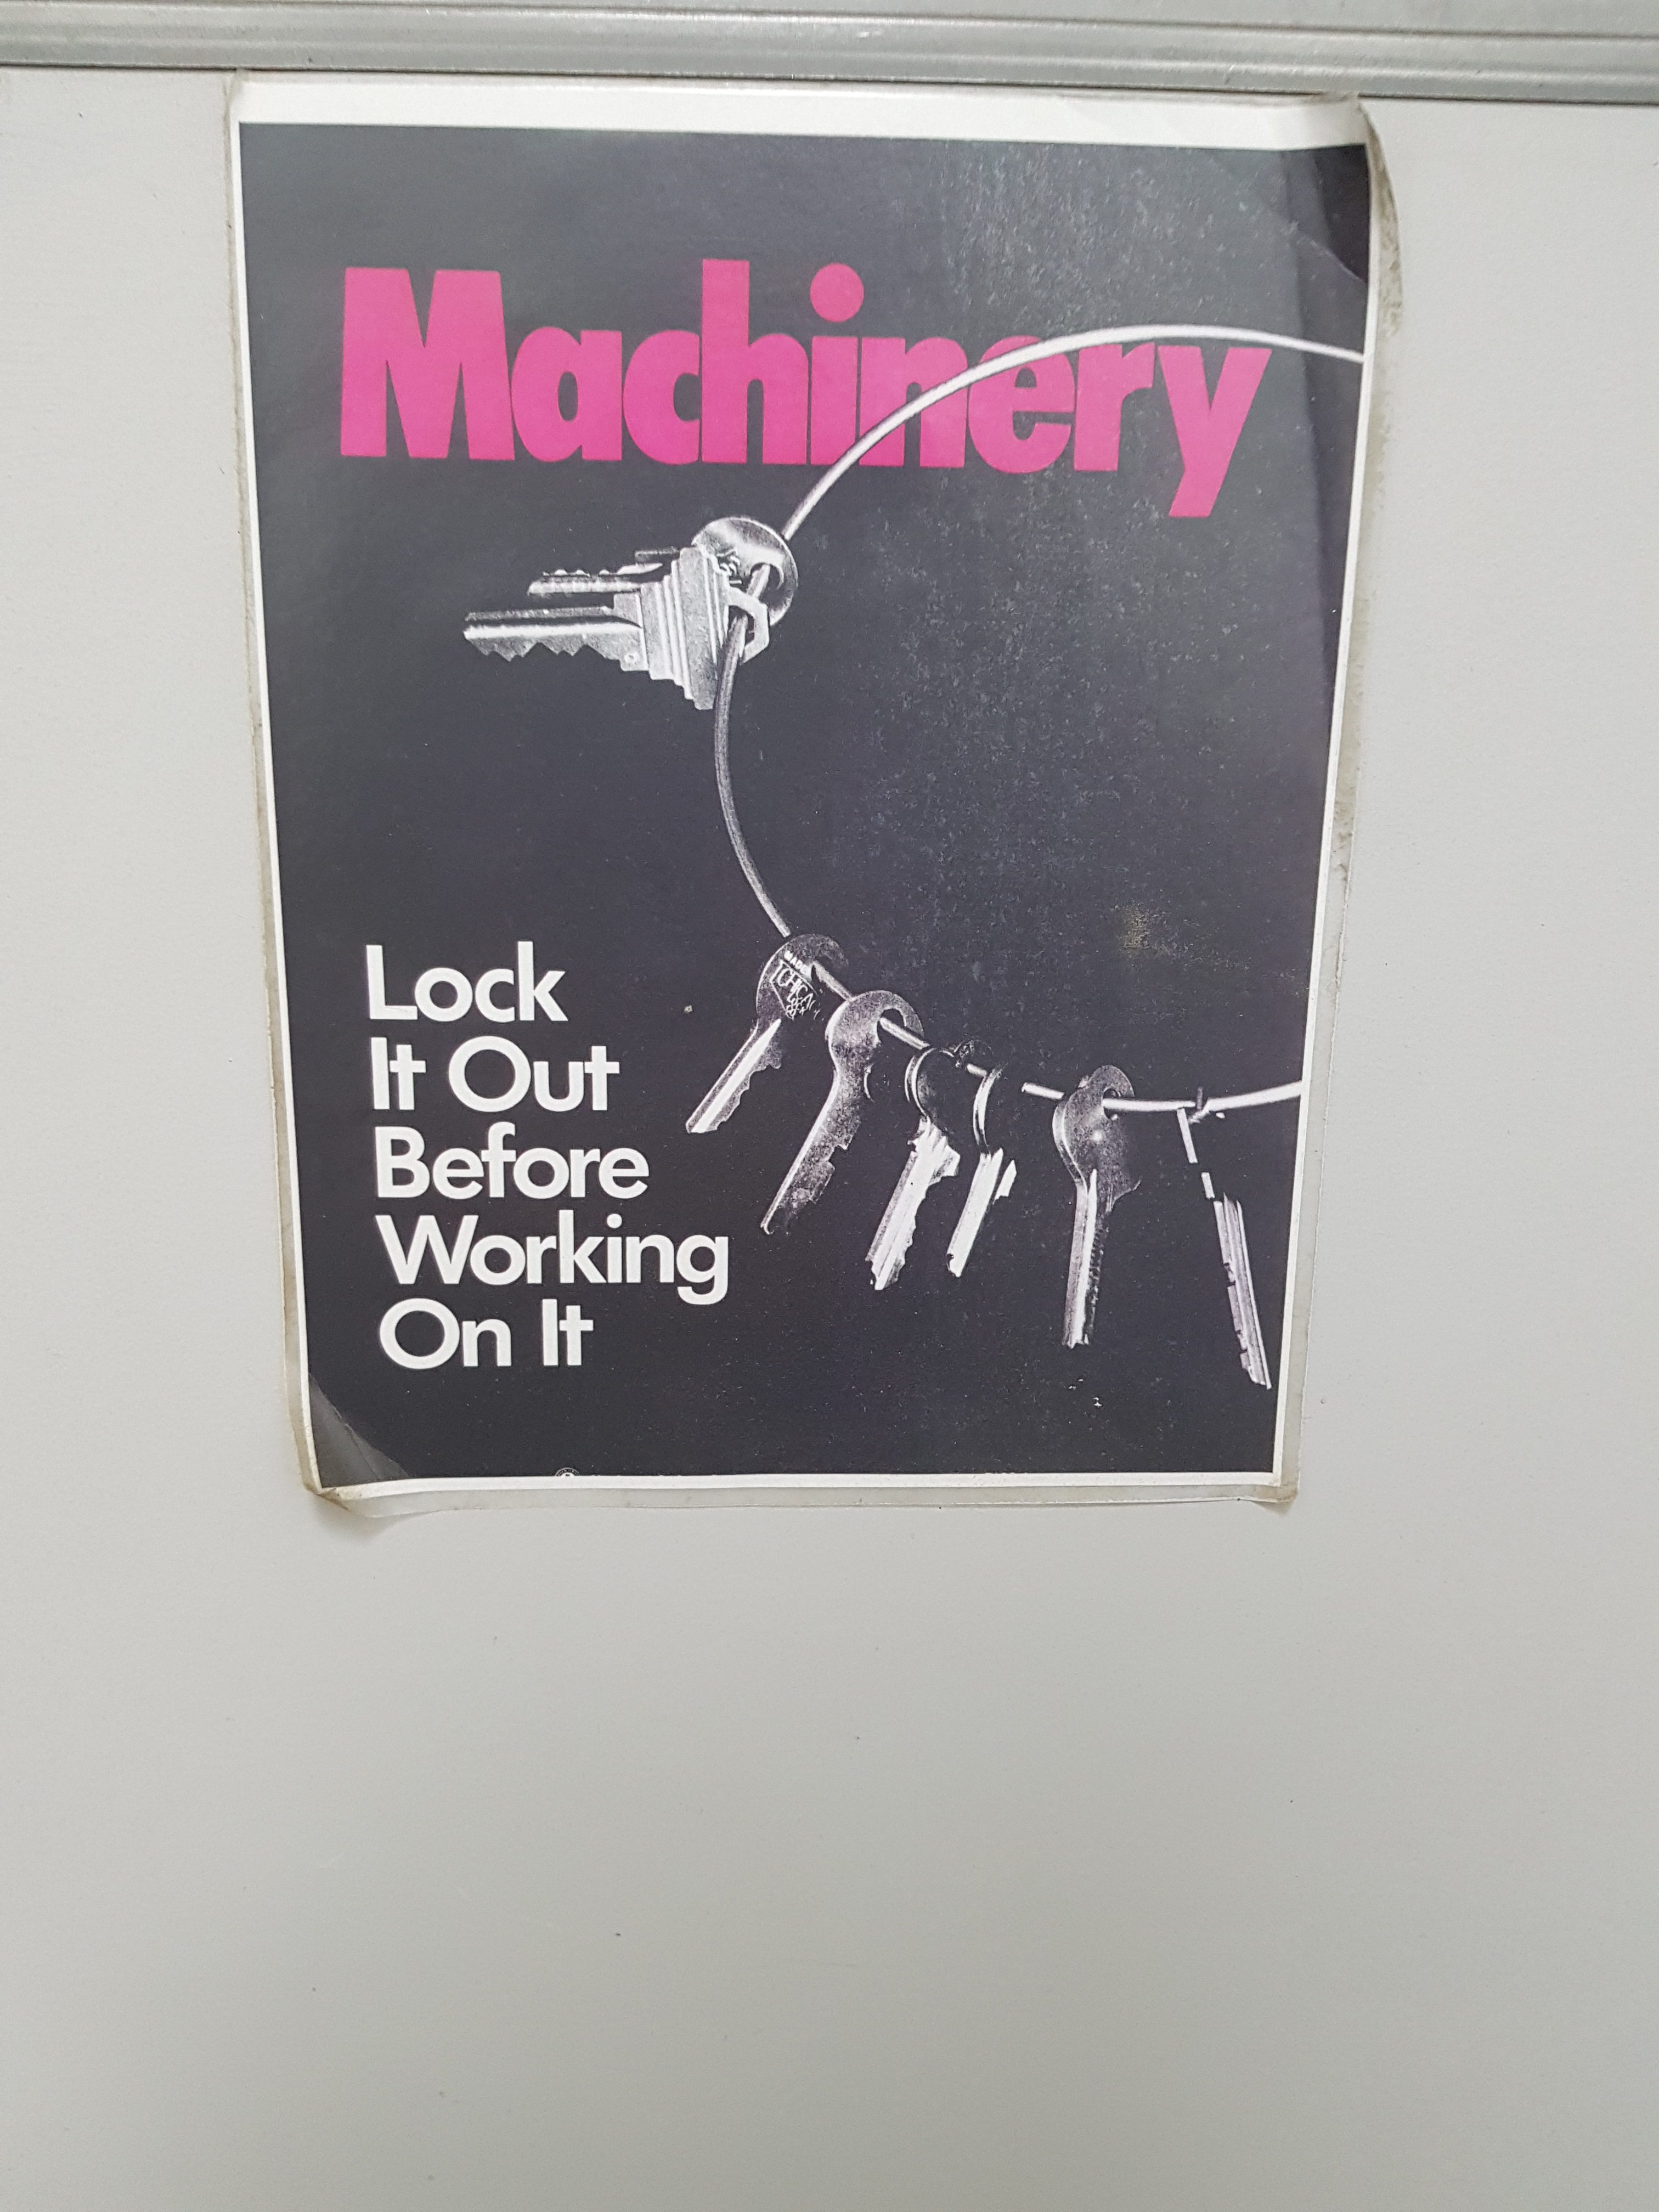 poster about locking machinery